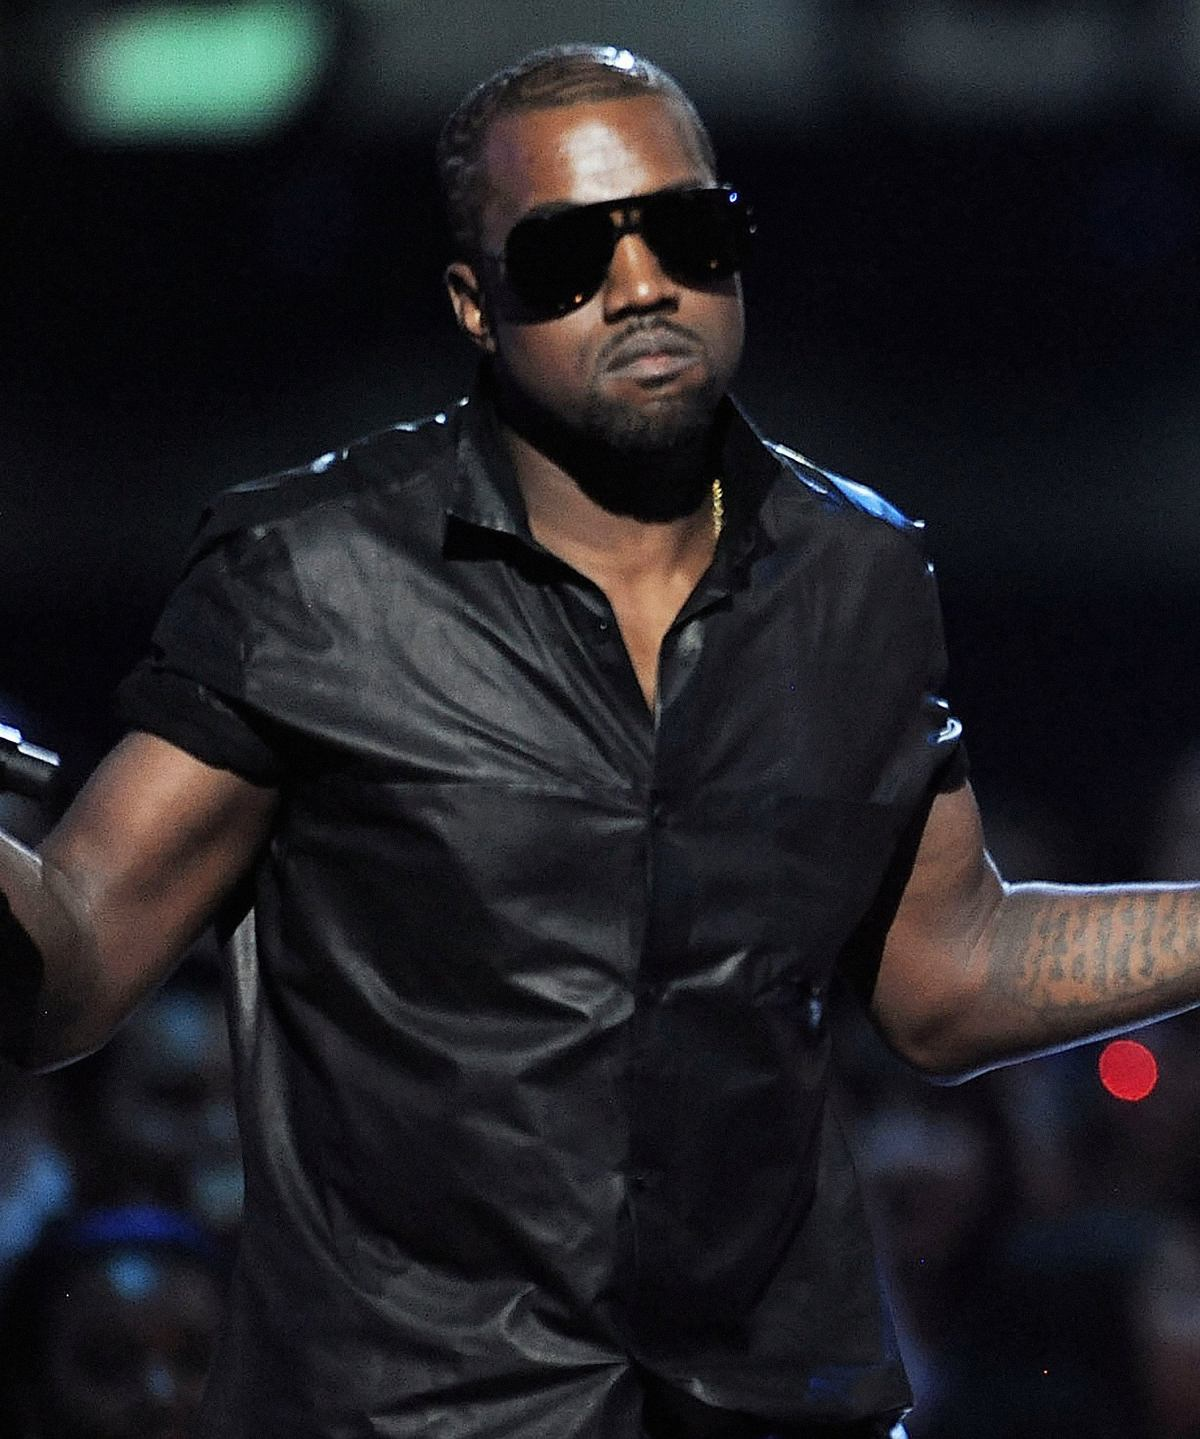 Kanye West Controversial Opinion On His Albums In GQ